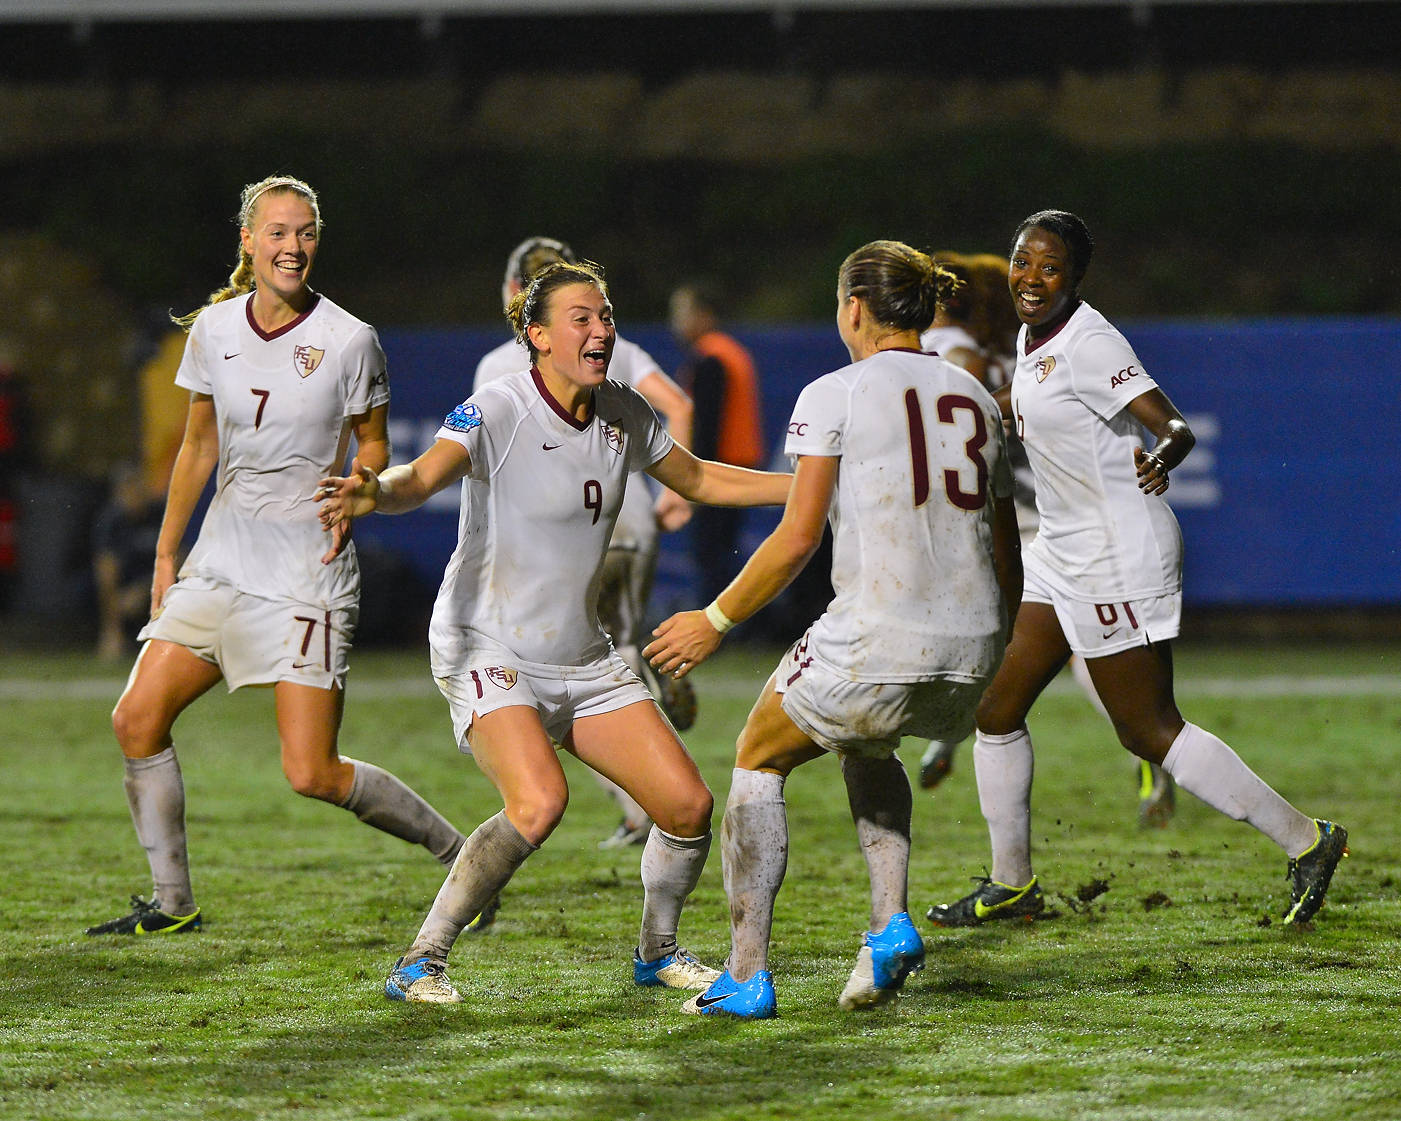 The Seminoles celebrate after scoring the equalizer with under one minute left in regulation